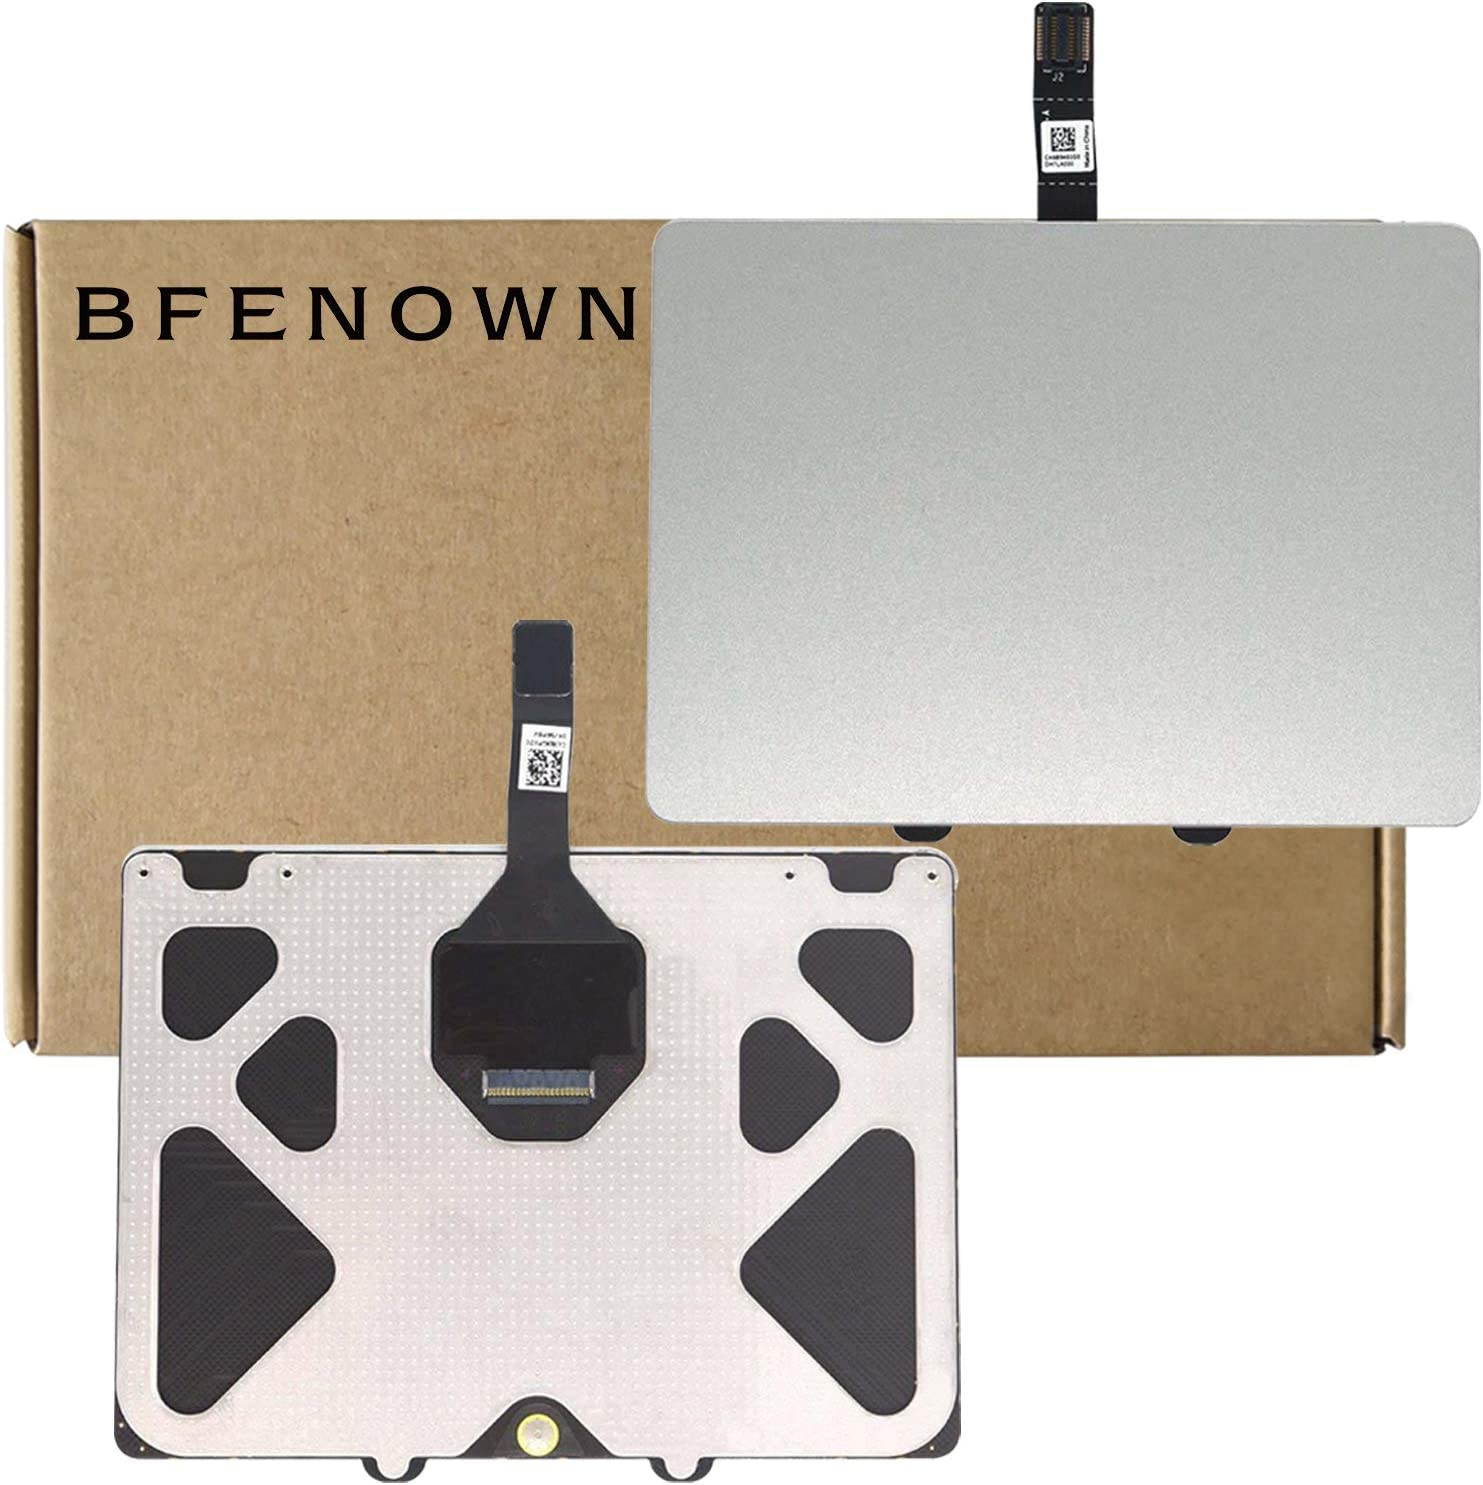 Bfenown Replacement Trackpad Touchpad for MacBook Pro Unibody 13'' Early mid Late 2009 2010 2011 2012 A1278 MB990LL/A MB991LL/A MC724LL/A MC374LL/A MC375LL/A MD102LL/A MC700LL/A 821-0831-A,821-1254-A